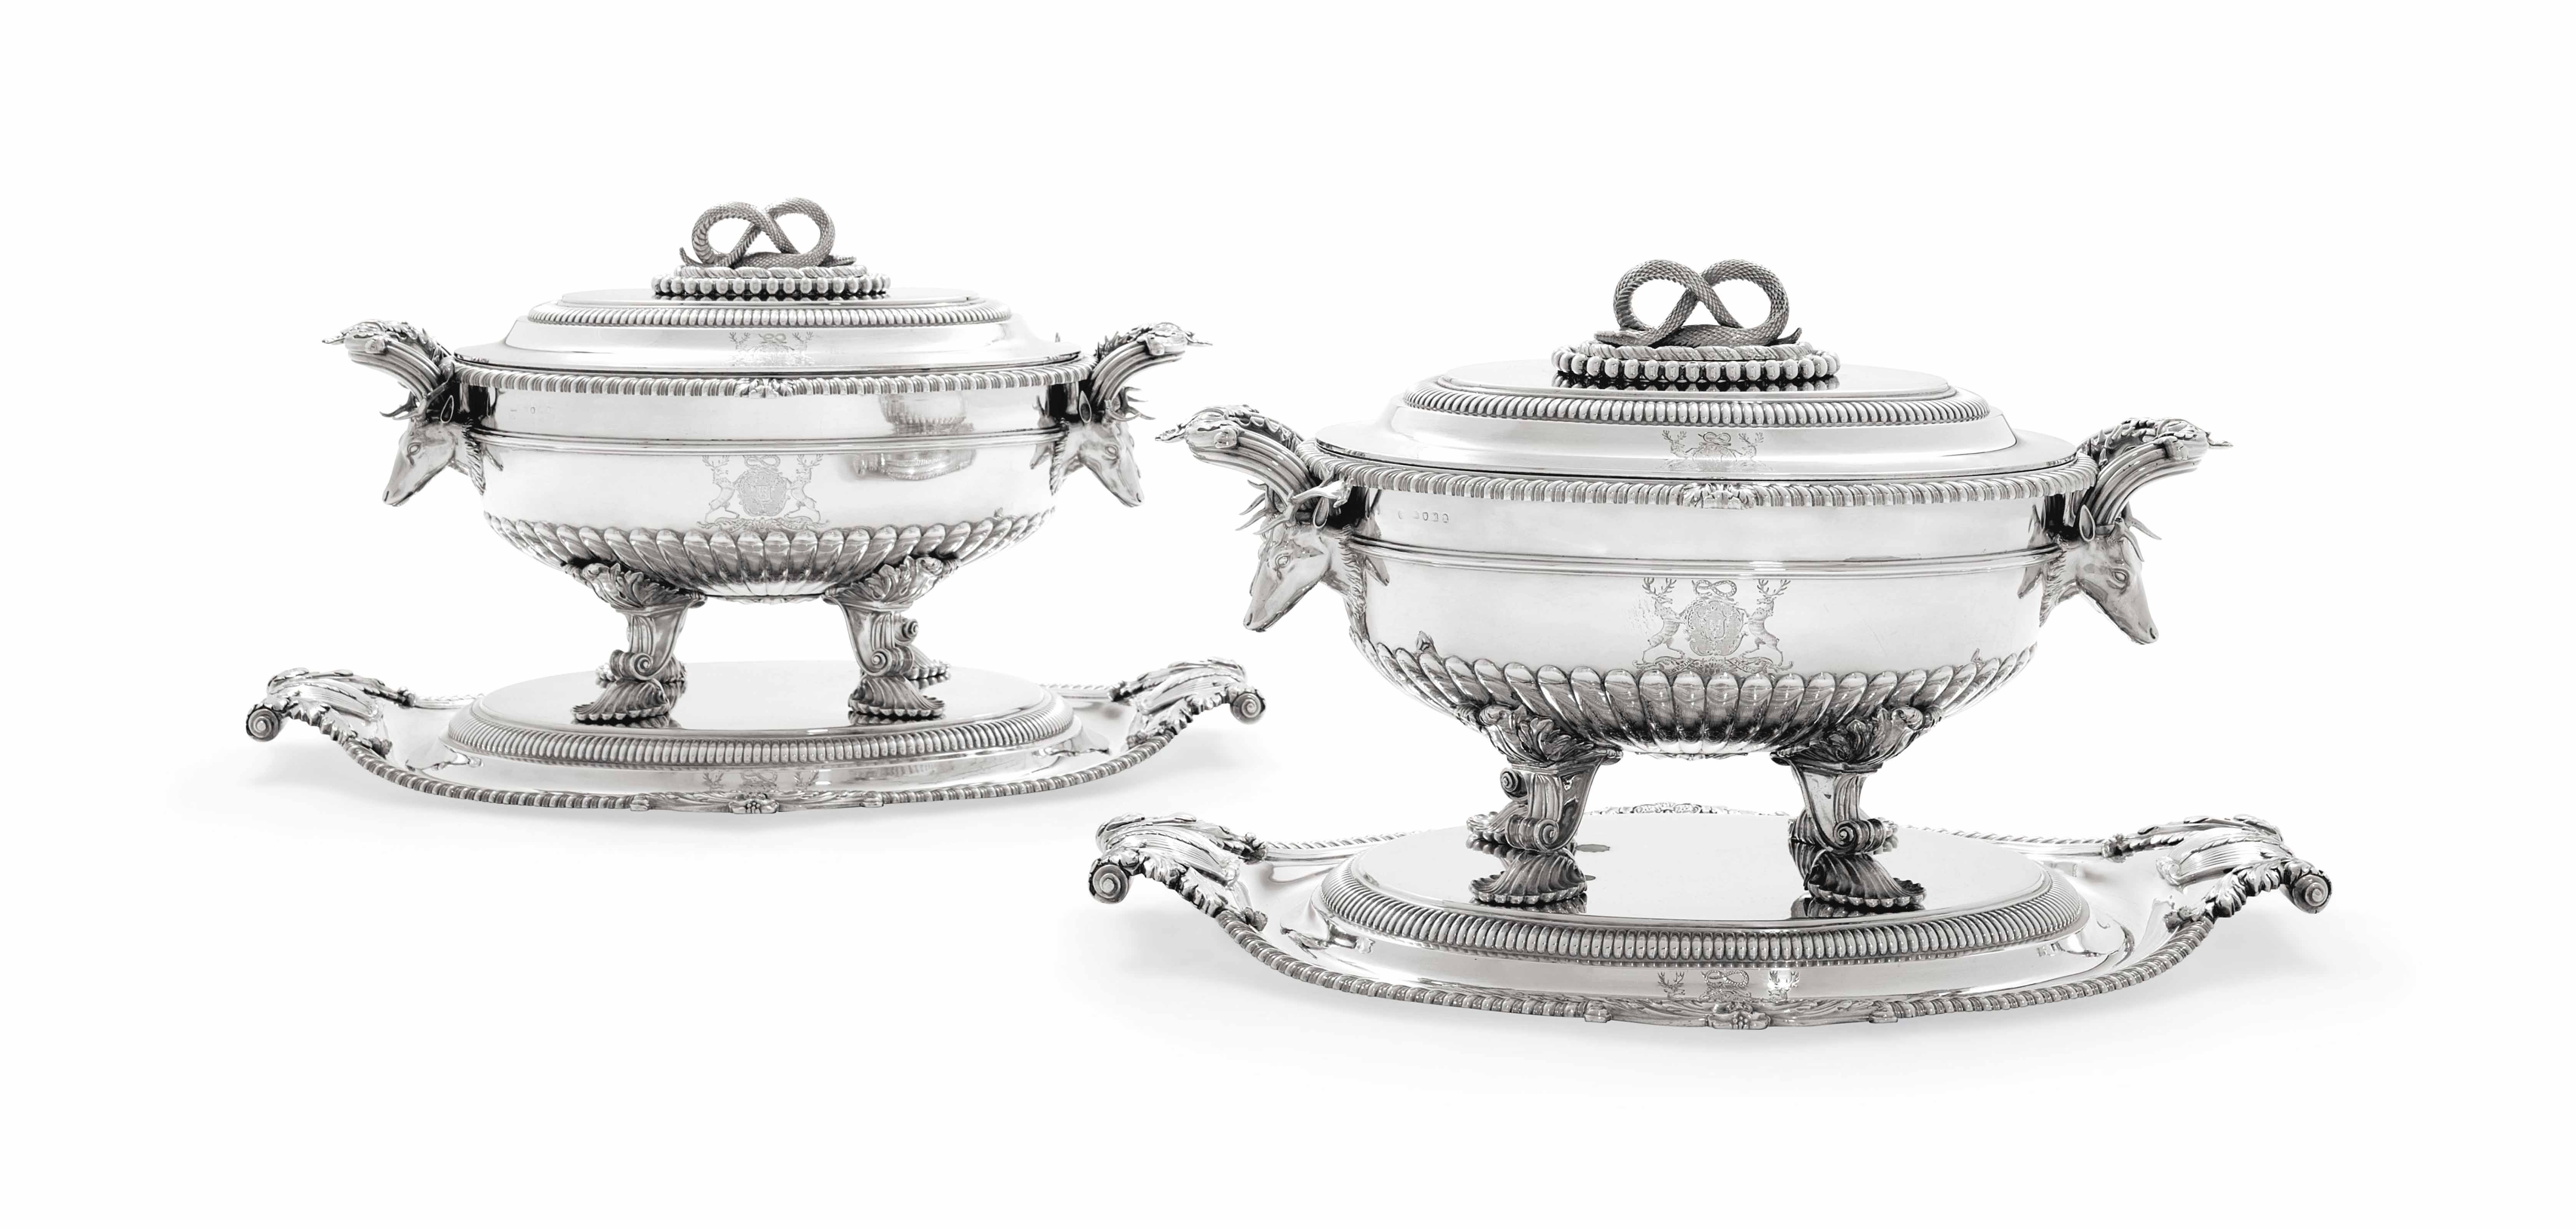 A PAIR OF GEORGE III SILVER SOUP-TUREENS, COVERS, STANDS AND LINERS